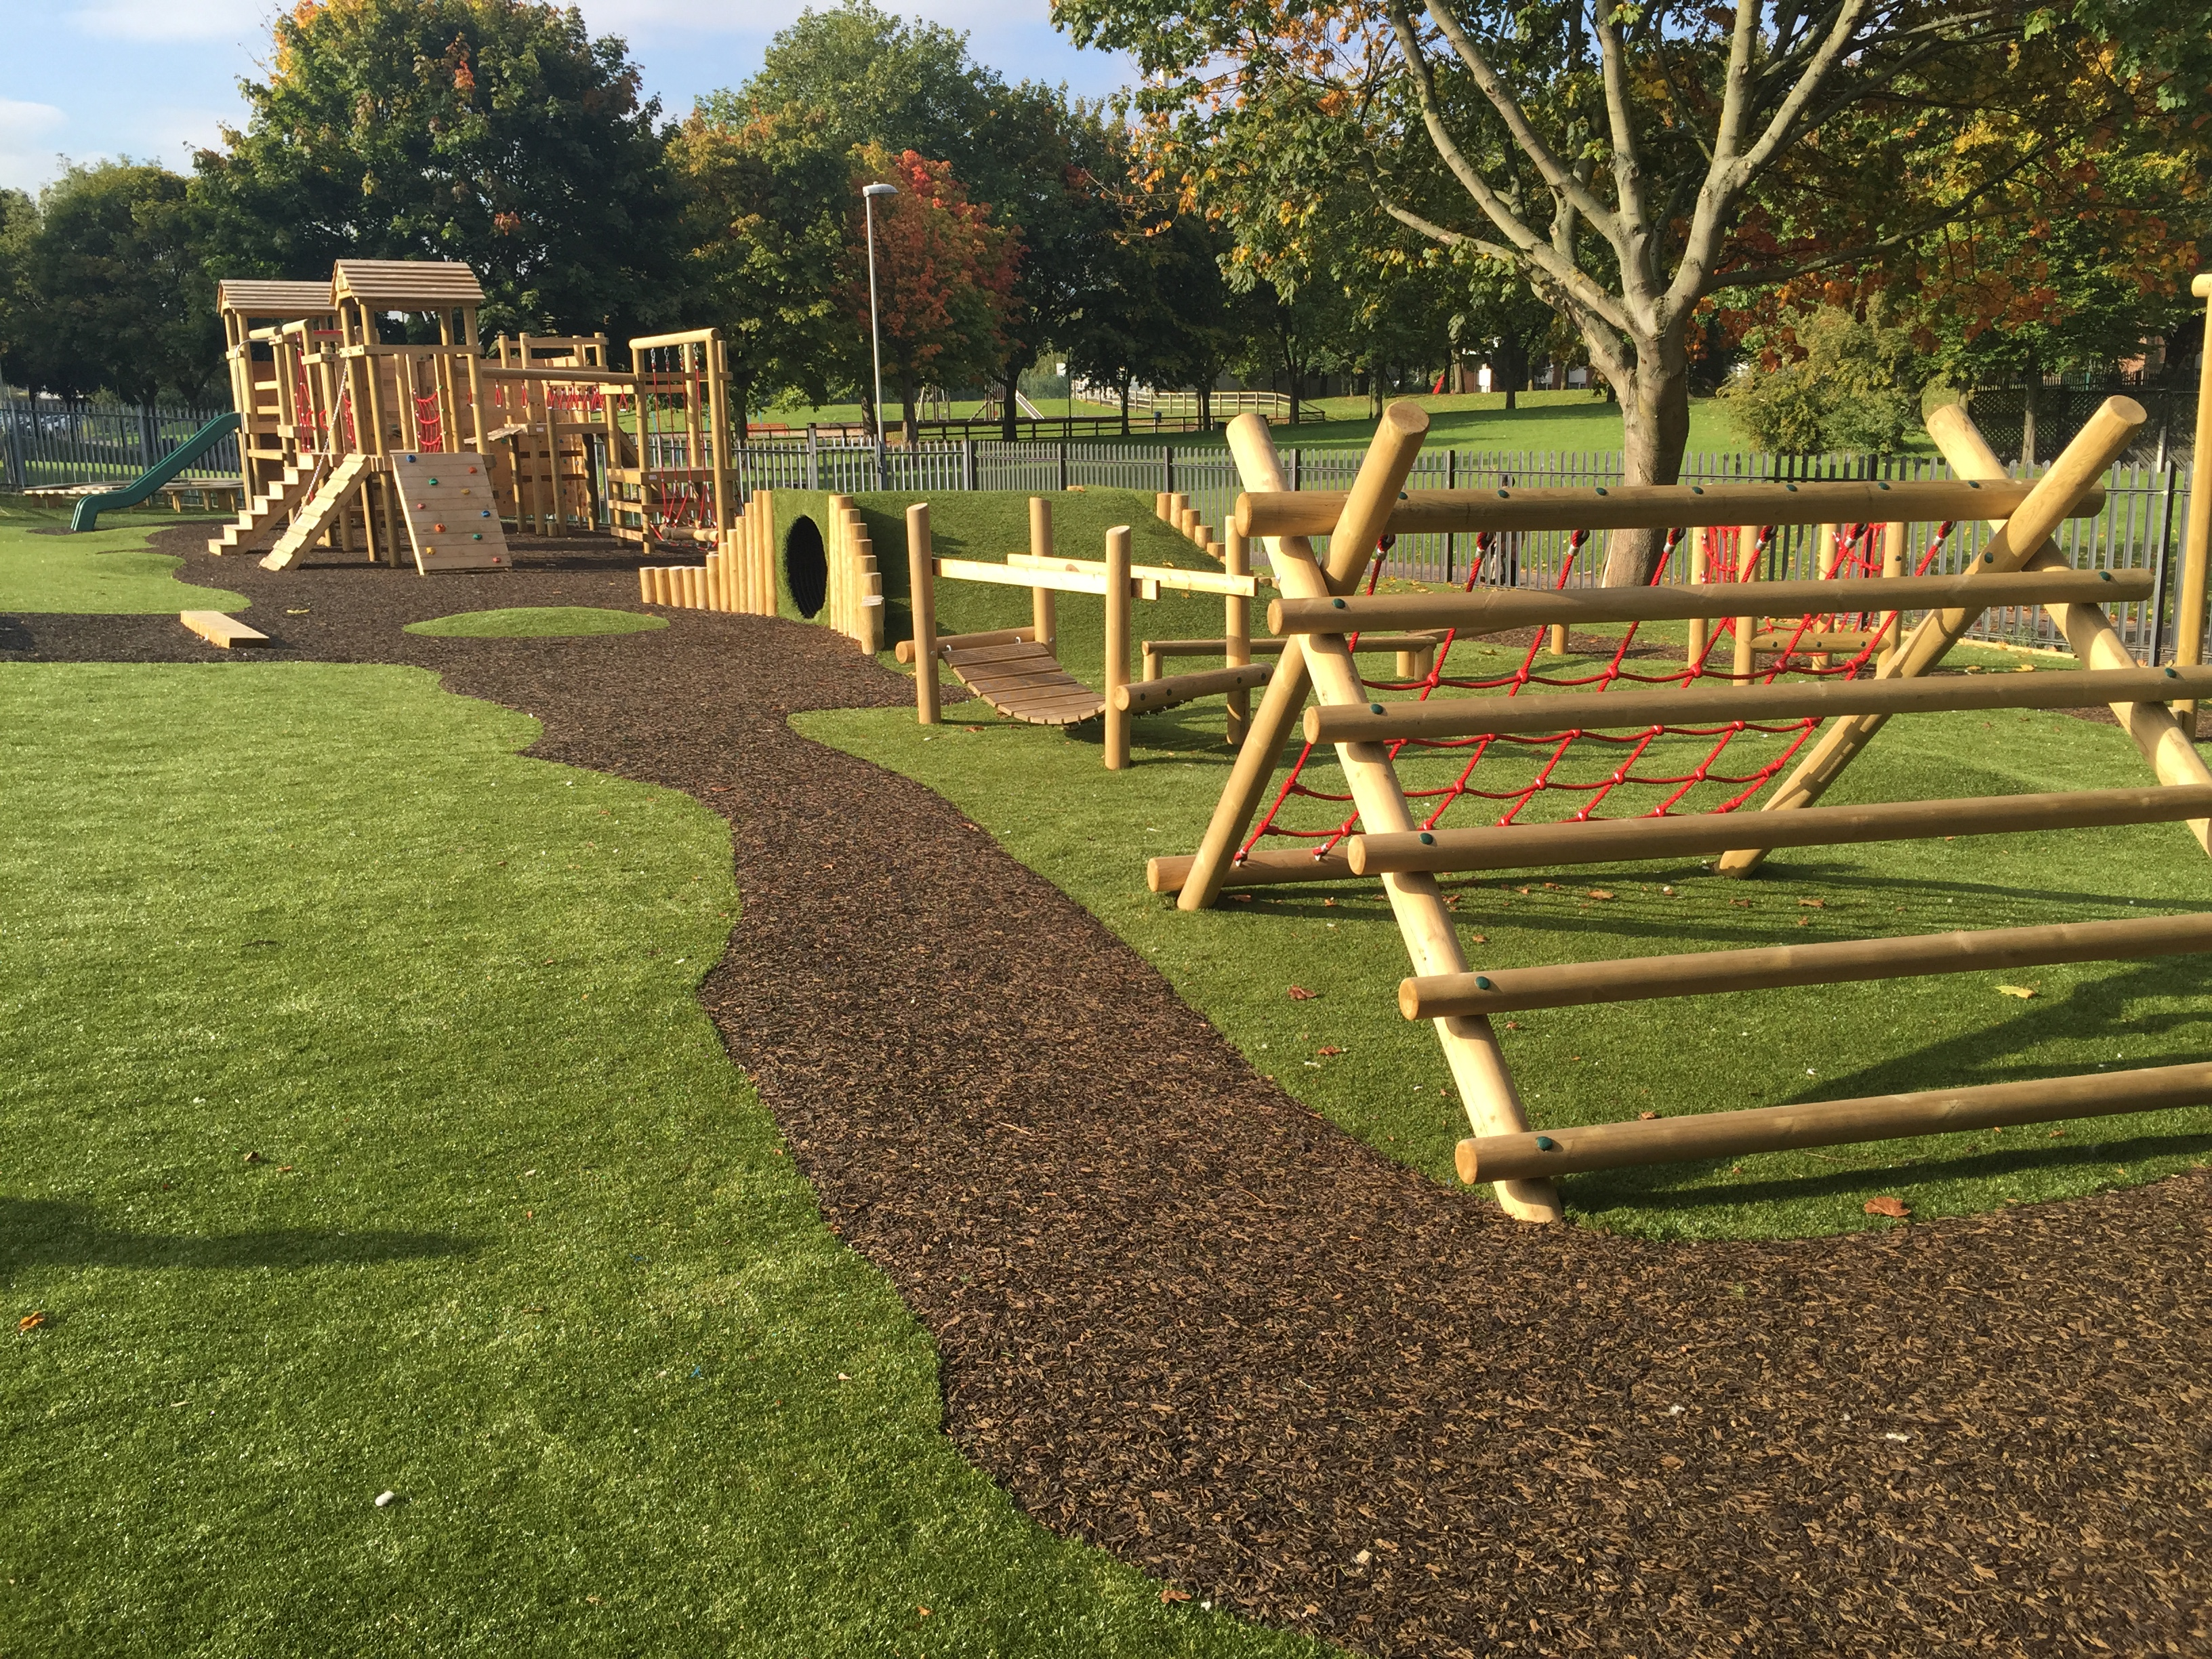 4 Signs You Should Renovate Your Wooden Playground Equipment